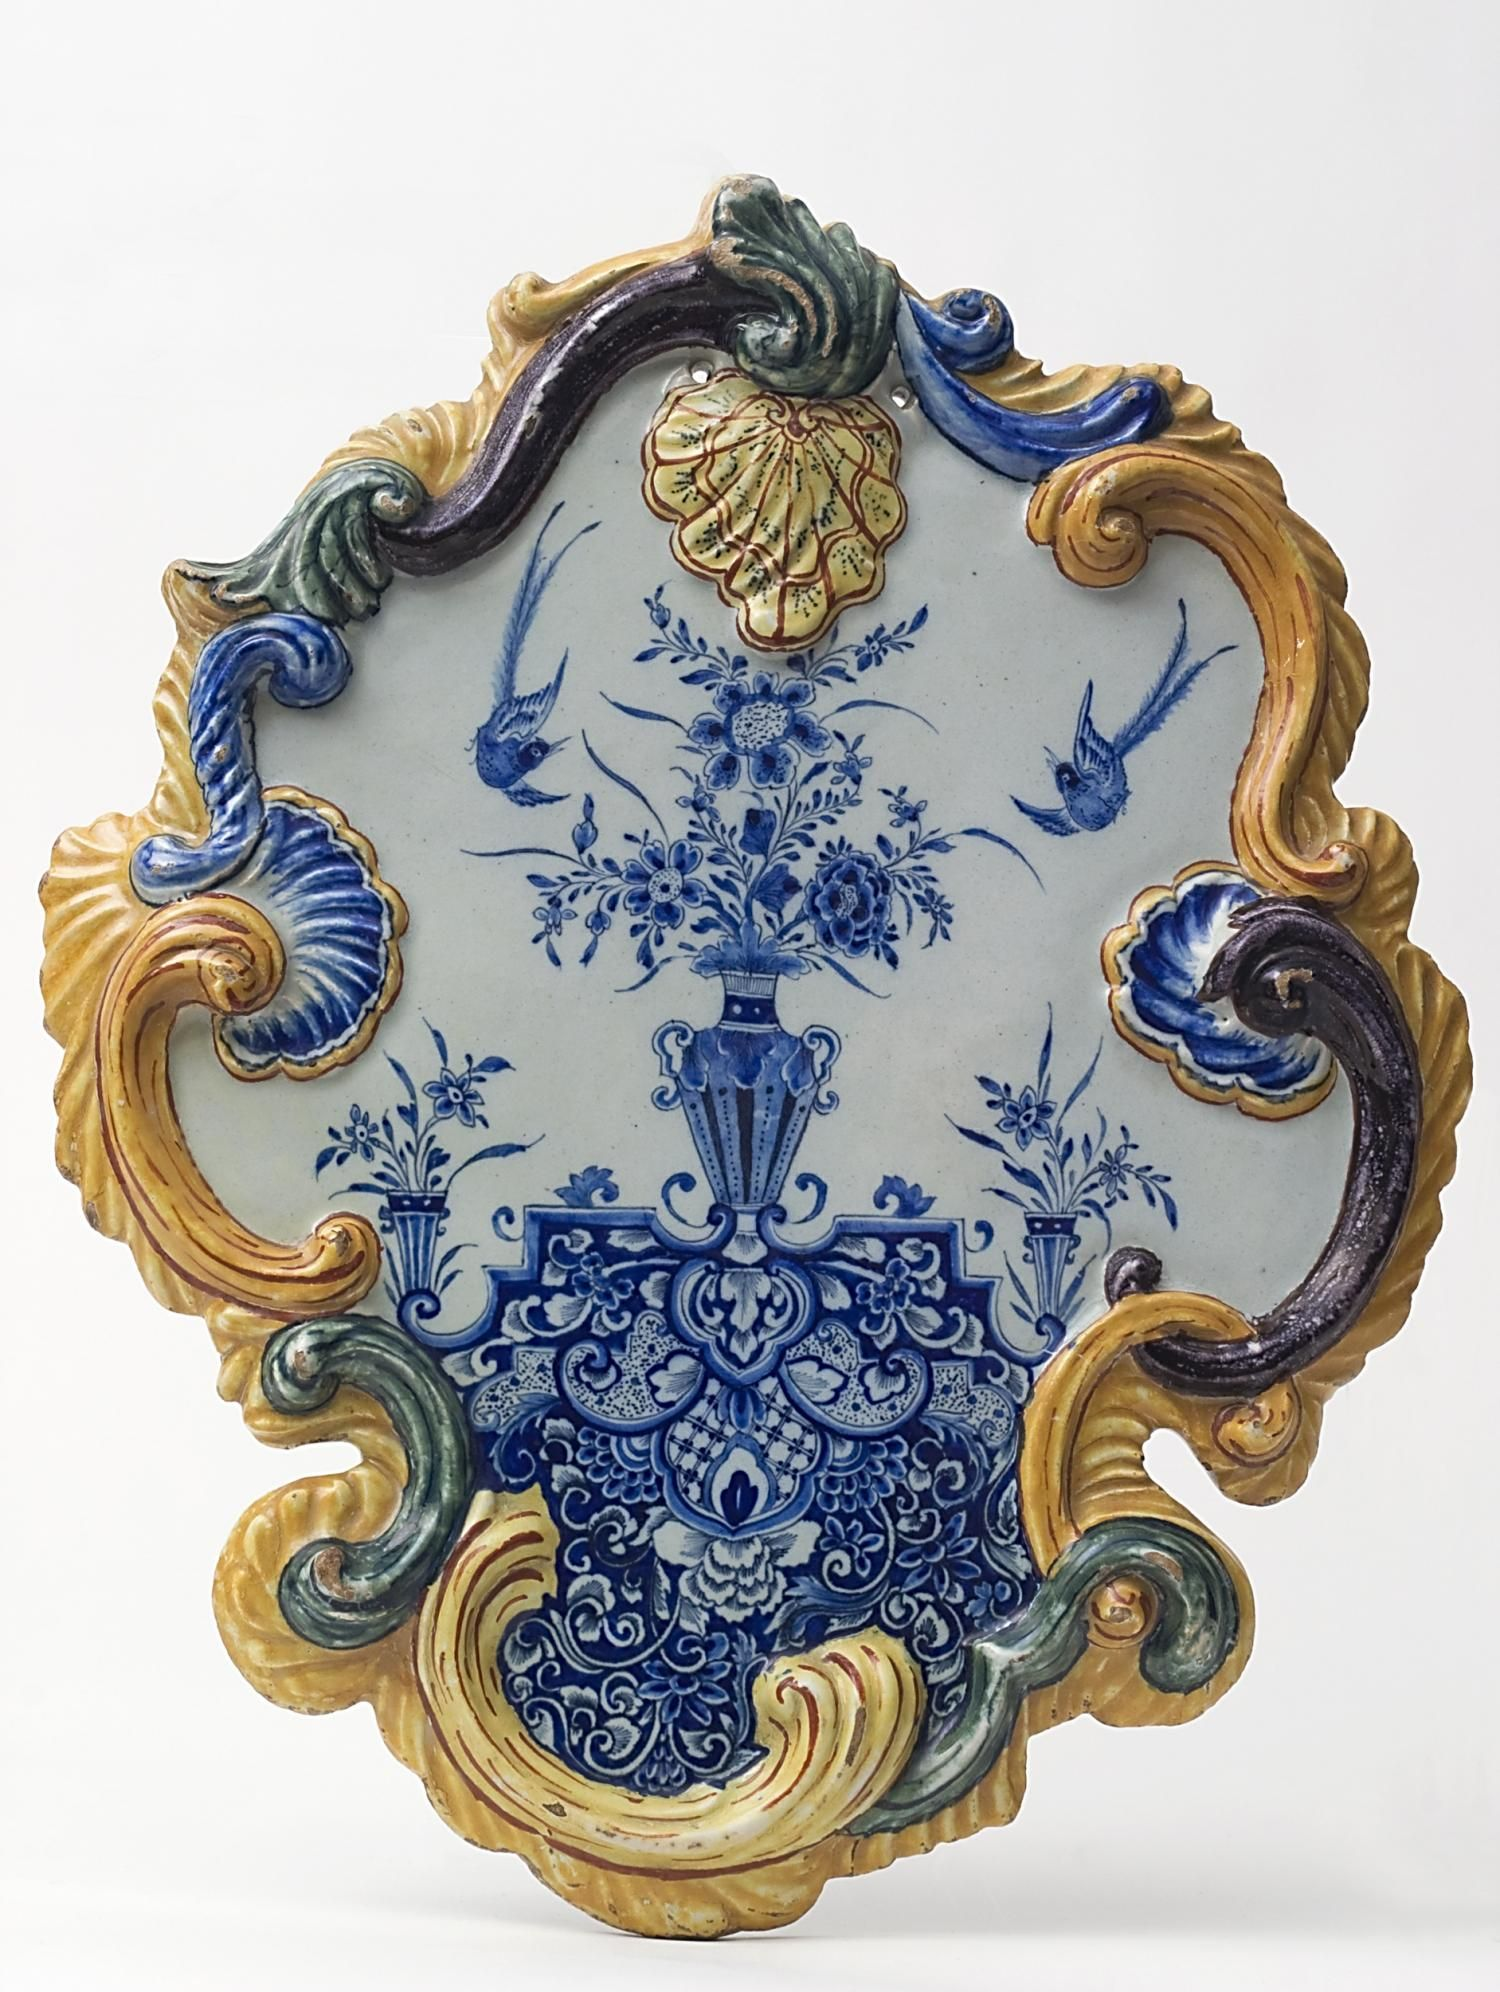 Dutch Delft From a Design by Daniel Marot - Bing Images